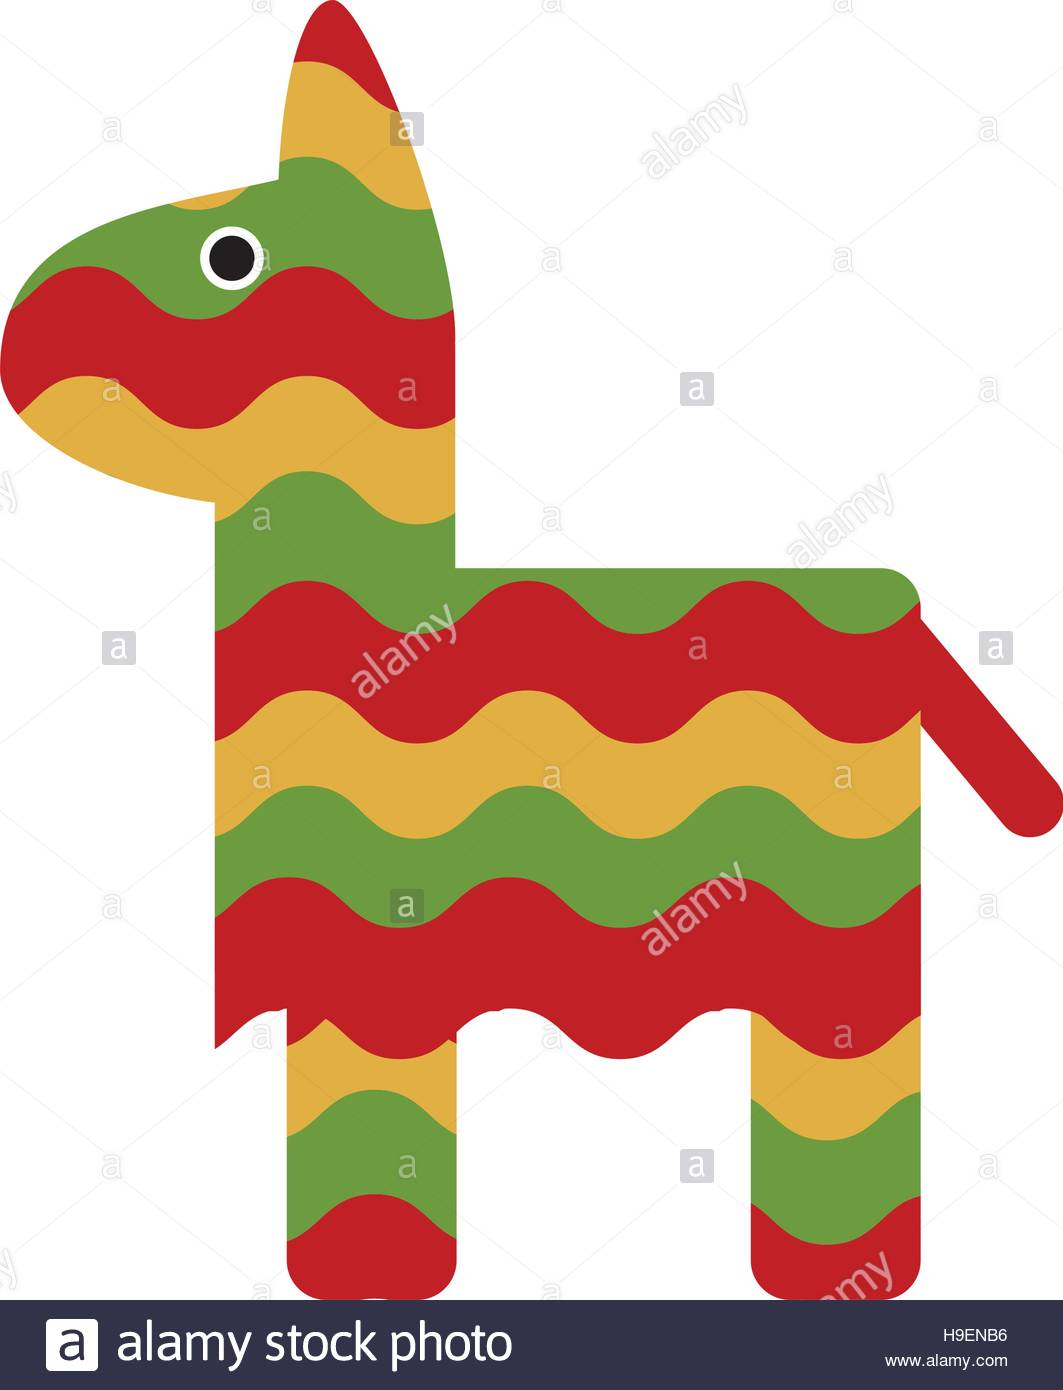 1063x1390 Mexican Pinata Stock Photos Amp Mexican Pinata Stock Images